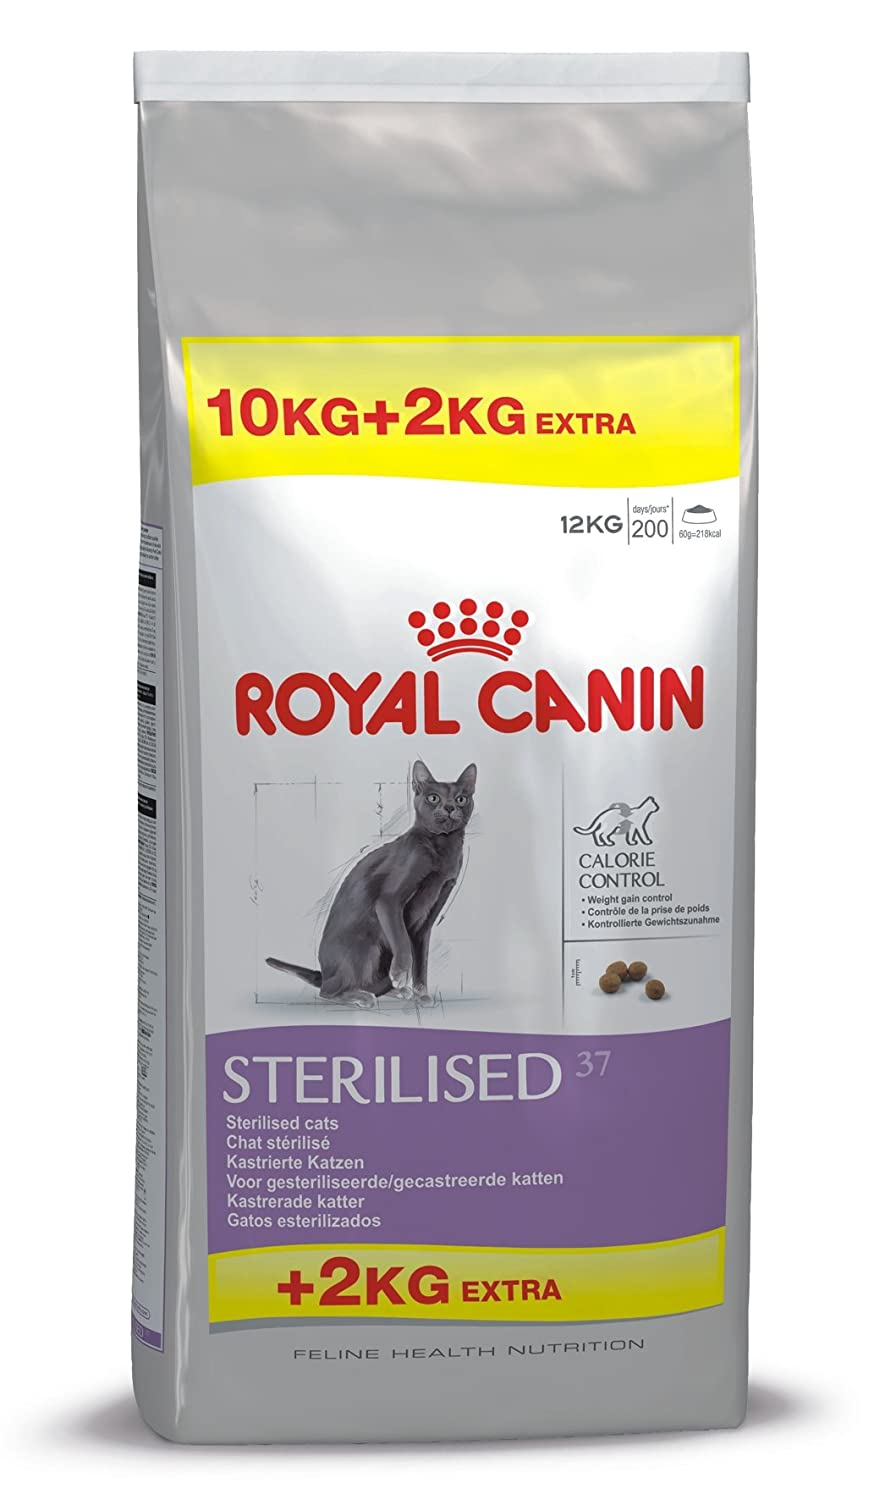 ROYAL CANIN Feline Health Nutrition Sterilised 37 Saco DE 10 + 2 Kg: Amazon.es: Productos para mascotas